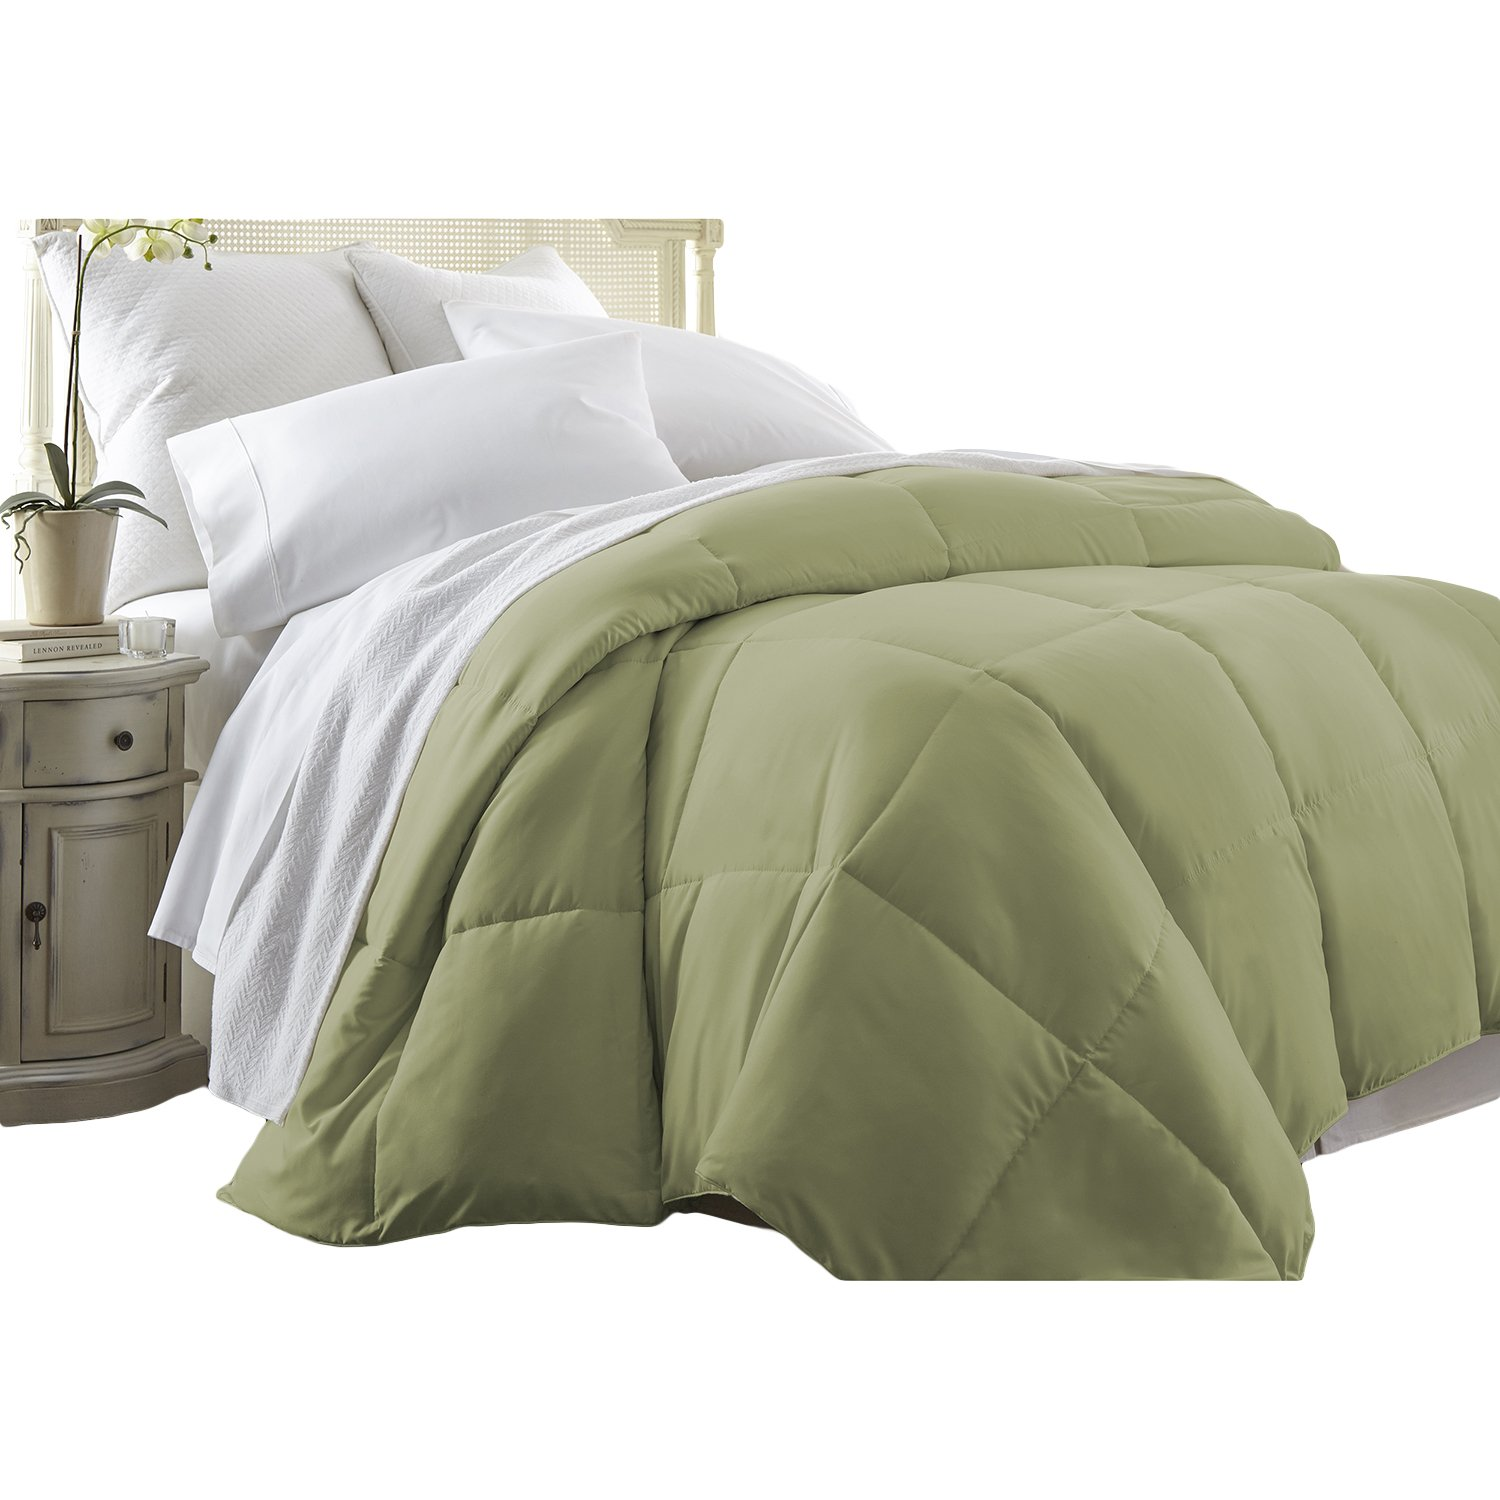 sets full comforters comforter bedding queen and down dreambest covers c duvets duvet